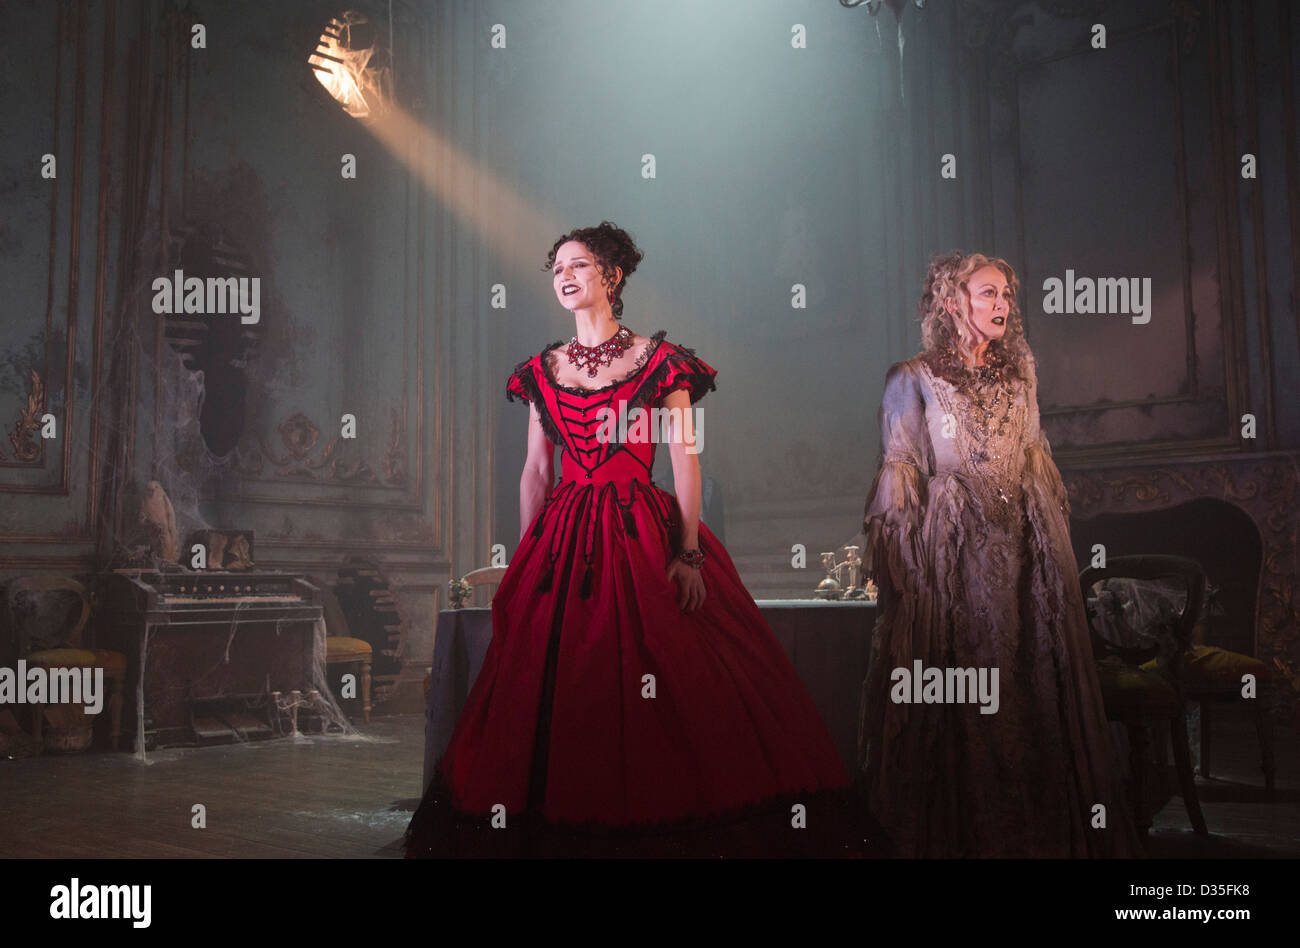 The Play Great Expectations Adapted From A Charles Dickens Novel Stock Photo Alamy